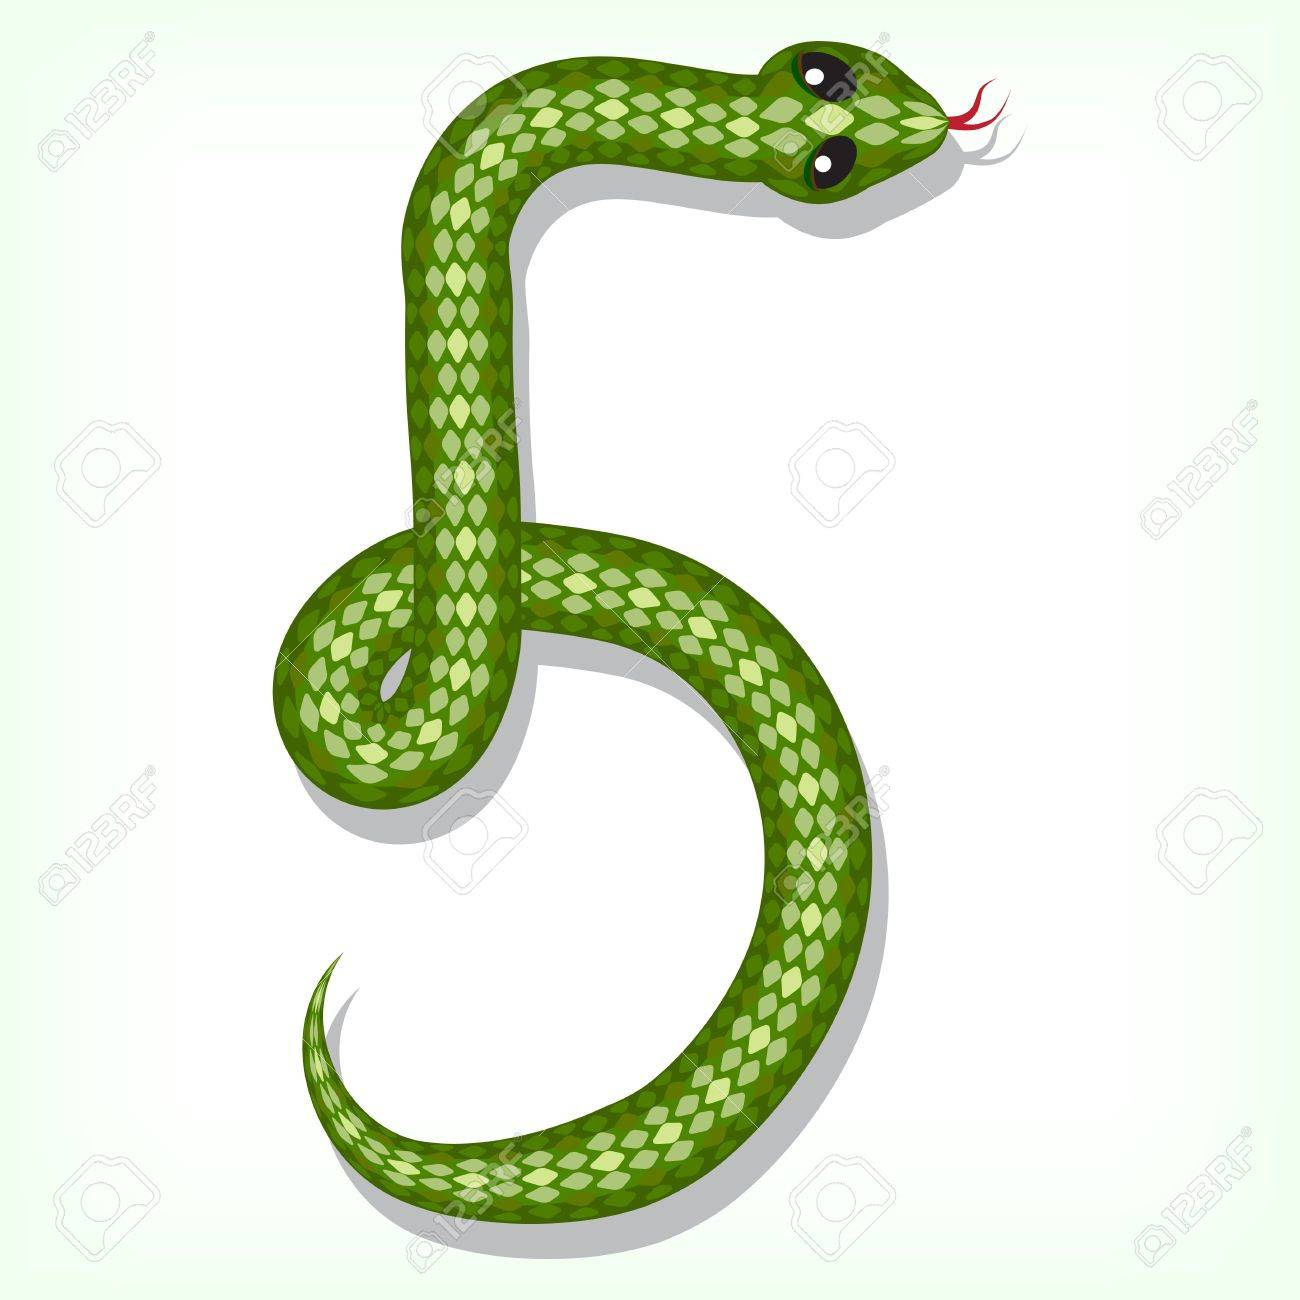 Snake Font Digit 5 Royalty Free Cliparts Vectors And Stock Illustration Image 14680927